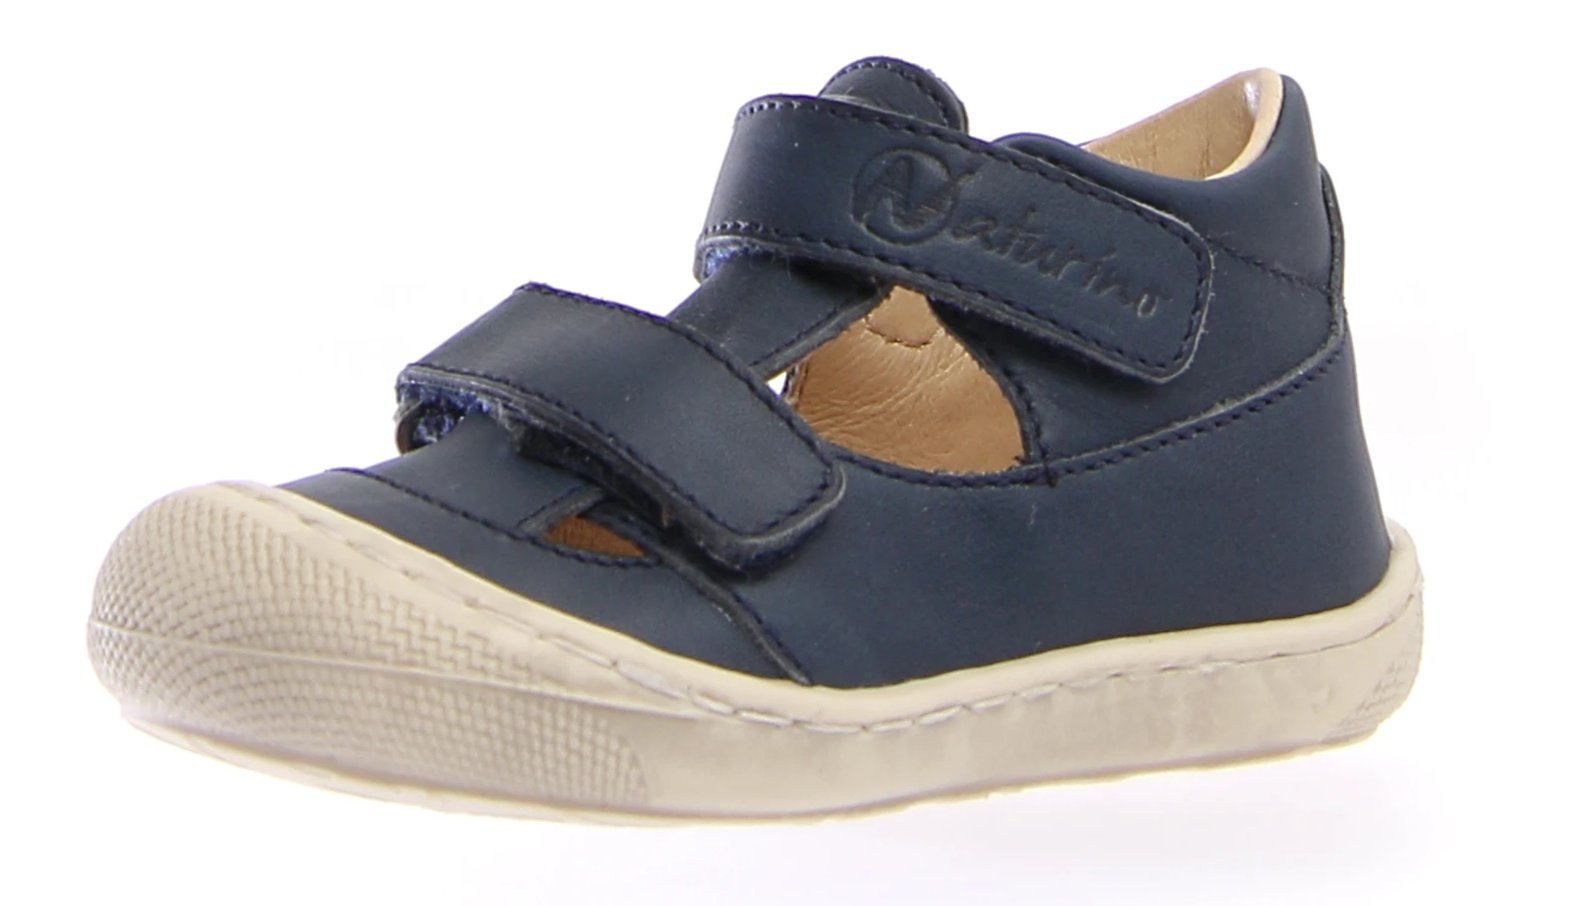 Puffy - Navy with White sole